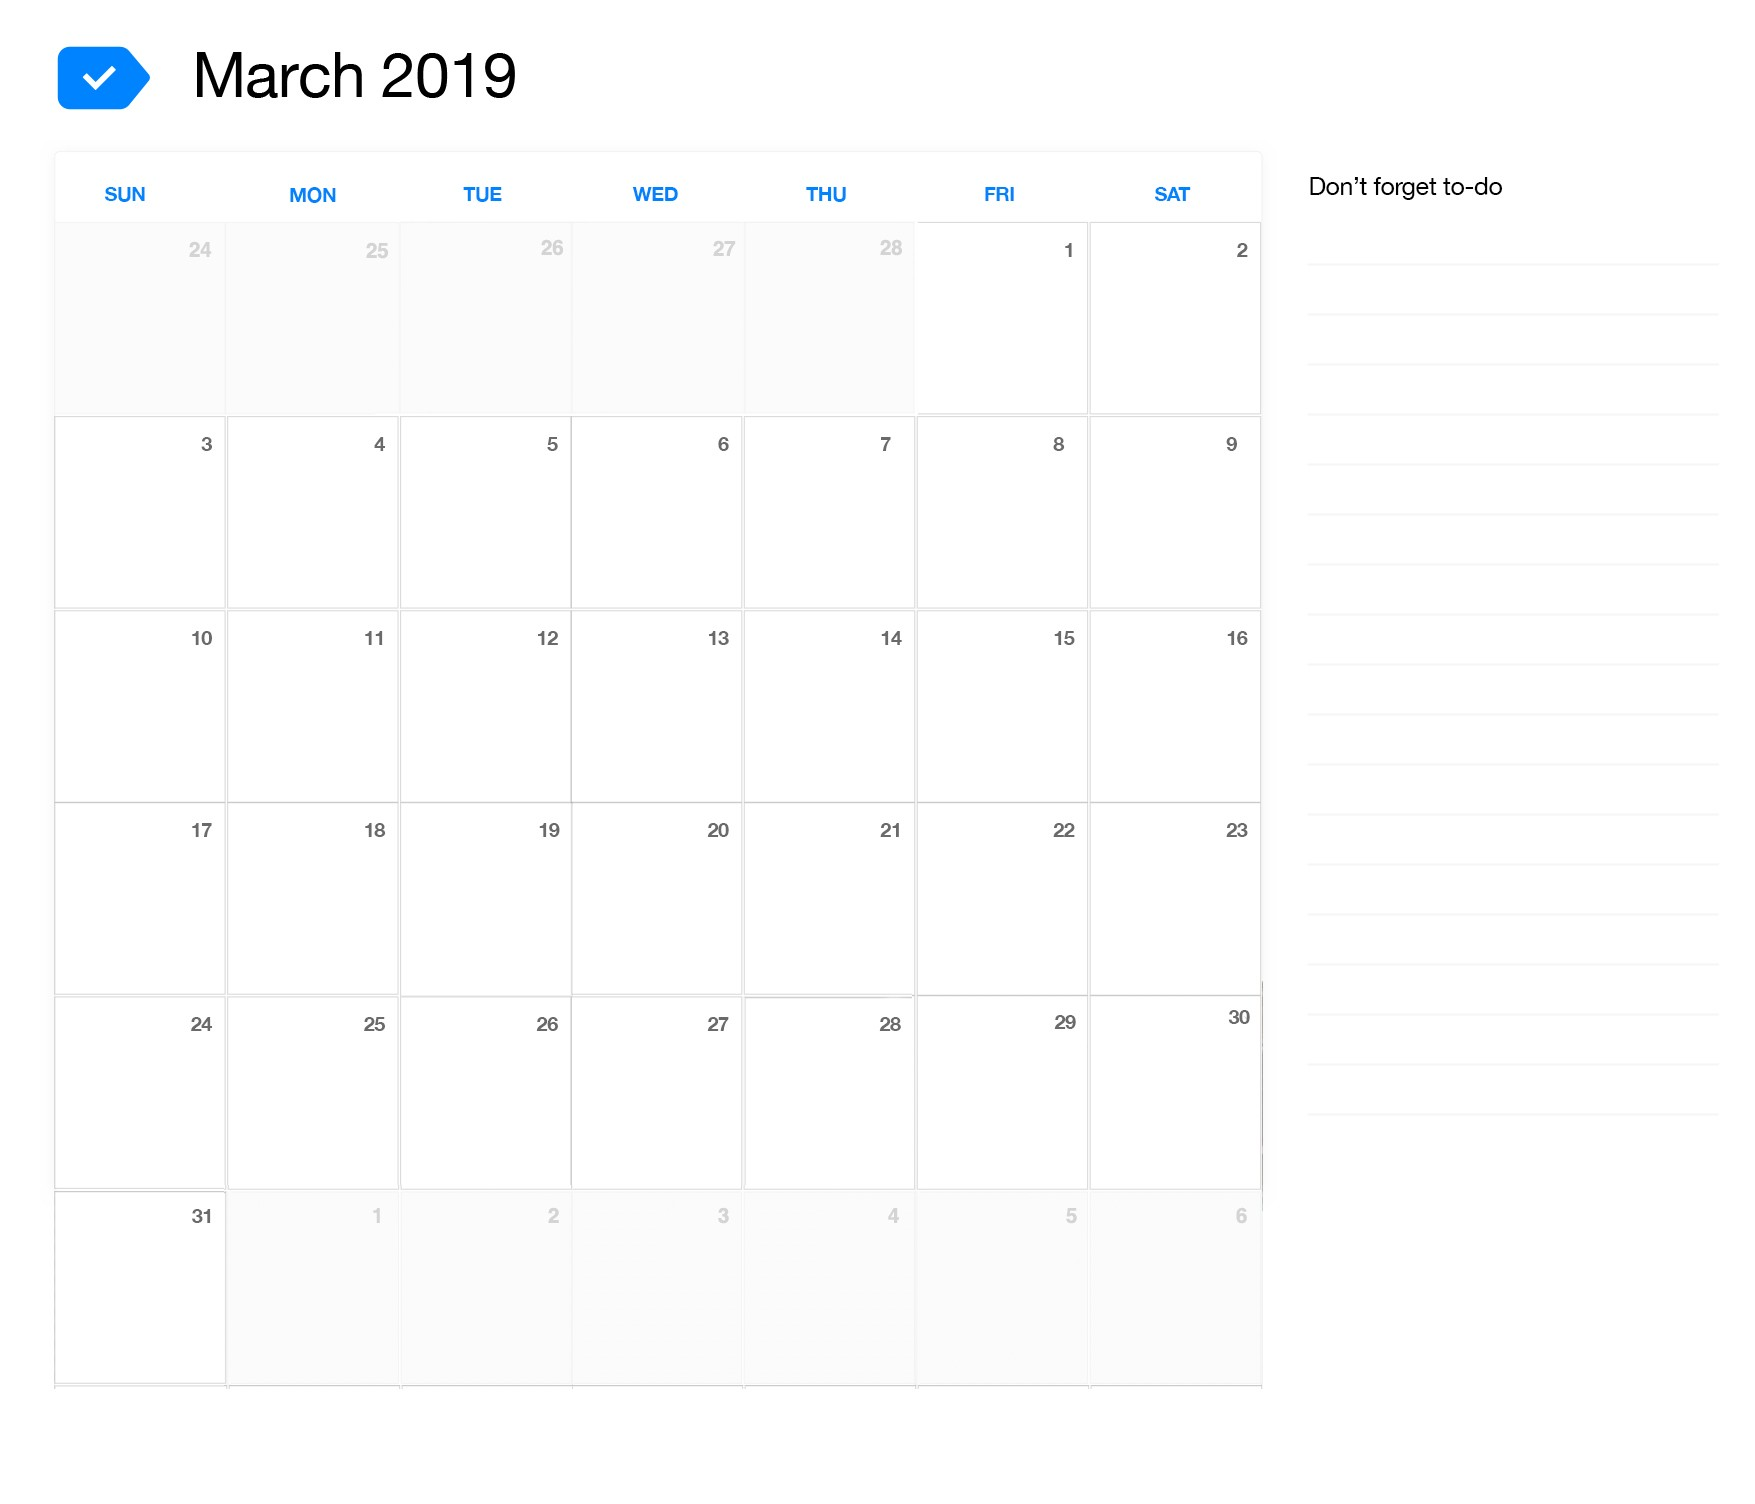 March Calendar 2019 Más Recientes March 2019 Printable Calendar Of March Calendar 2019 Más Populares March 2019 Calendar Pdf Word Excel